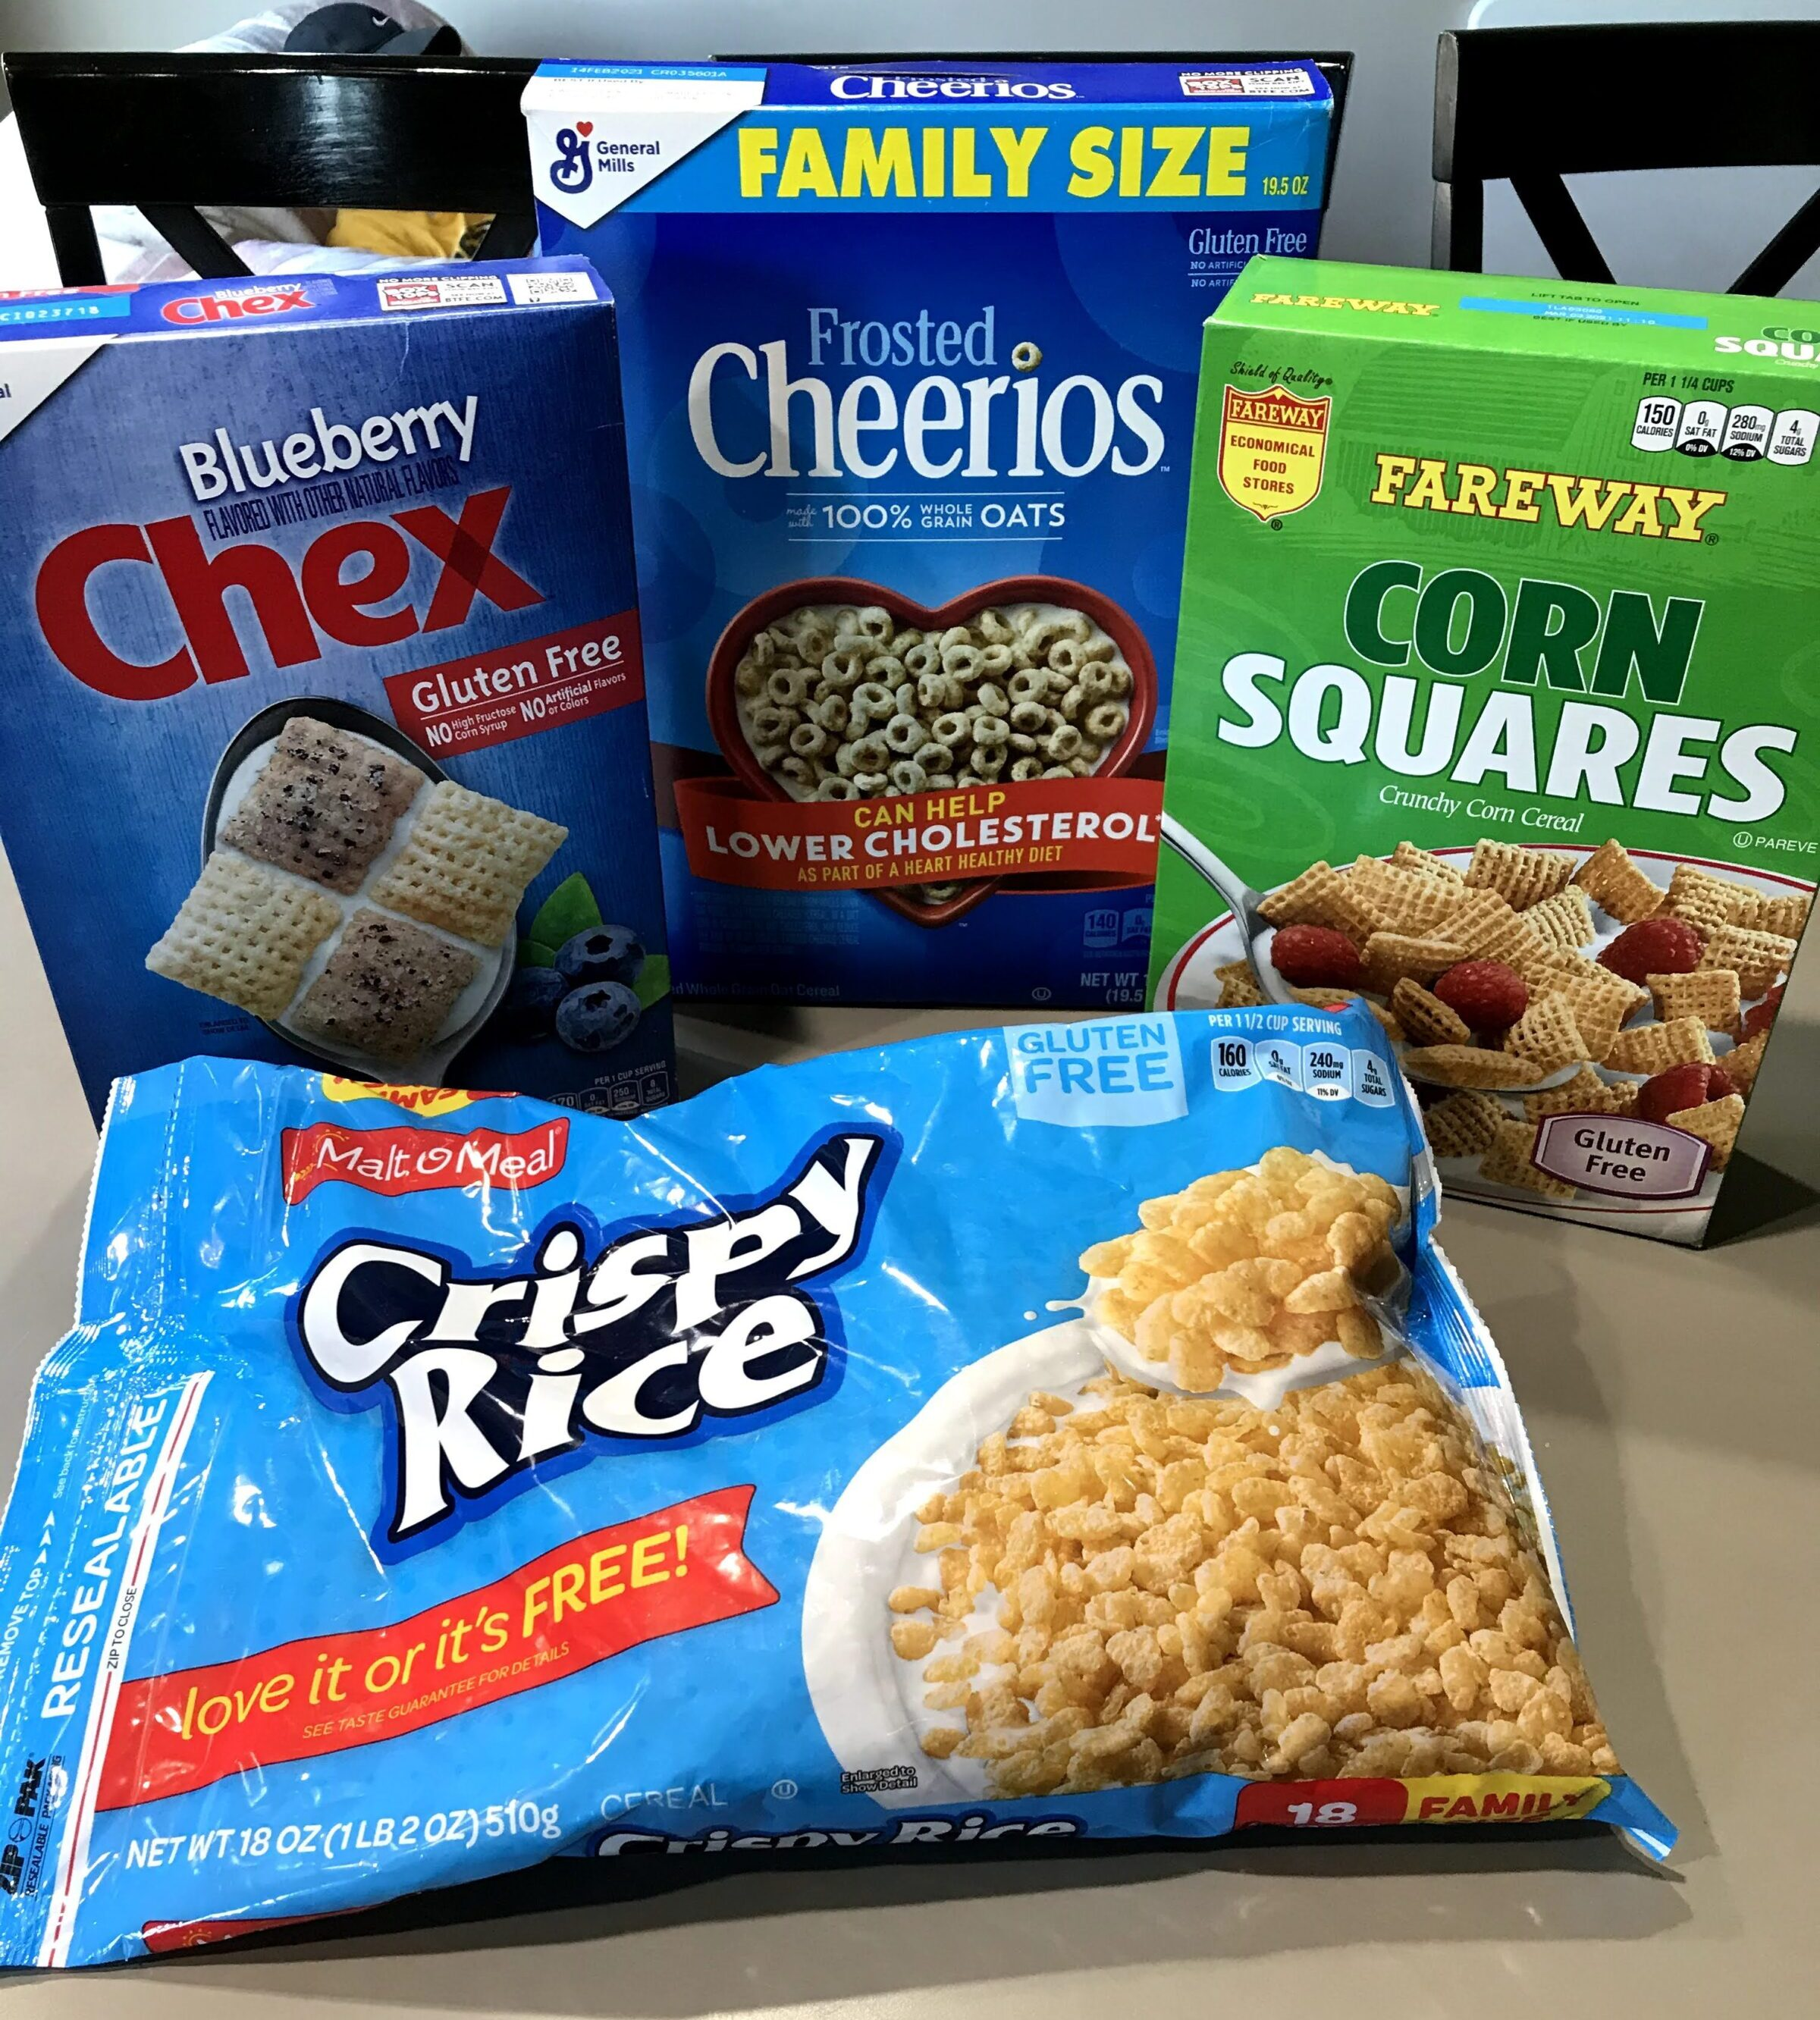 Gluten free cereals including Chex, Cheerios, and Malt O Meal Crispy Rice